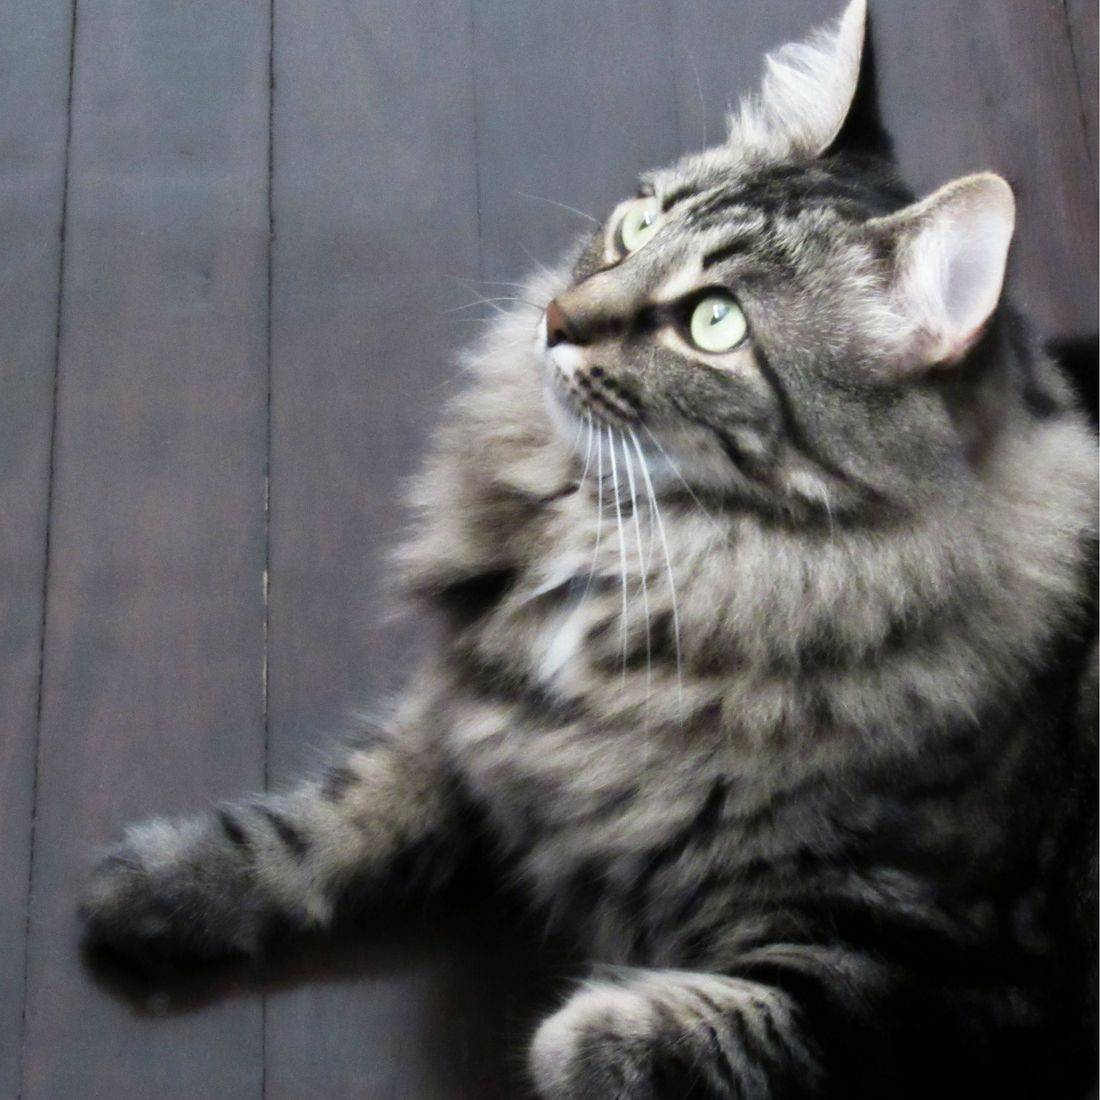 Feline, Cat, Pet, Furry, Maine Coon